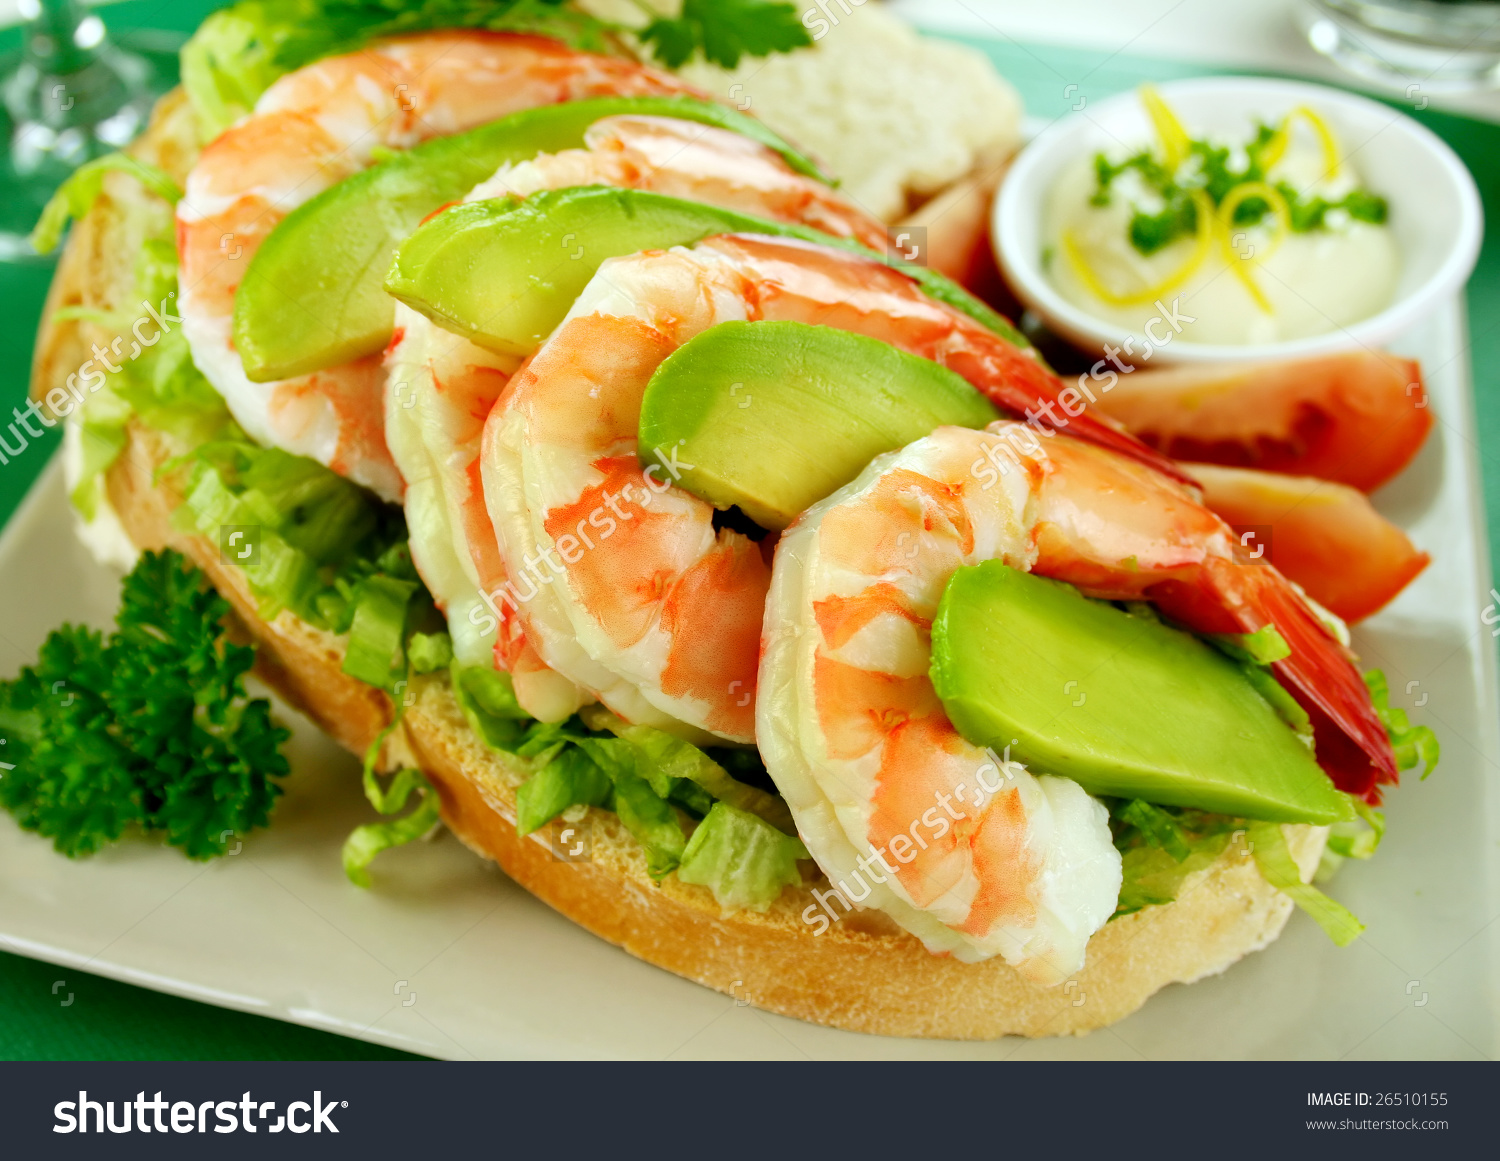 Delightful Fresh Shrimp And Avocado Open Sandwich With Lemon.